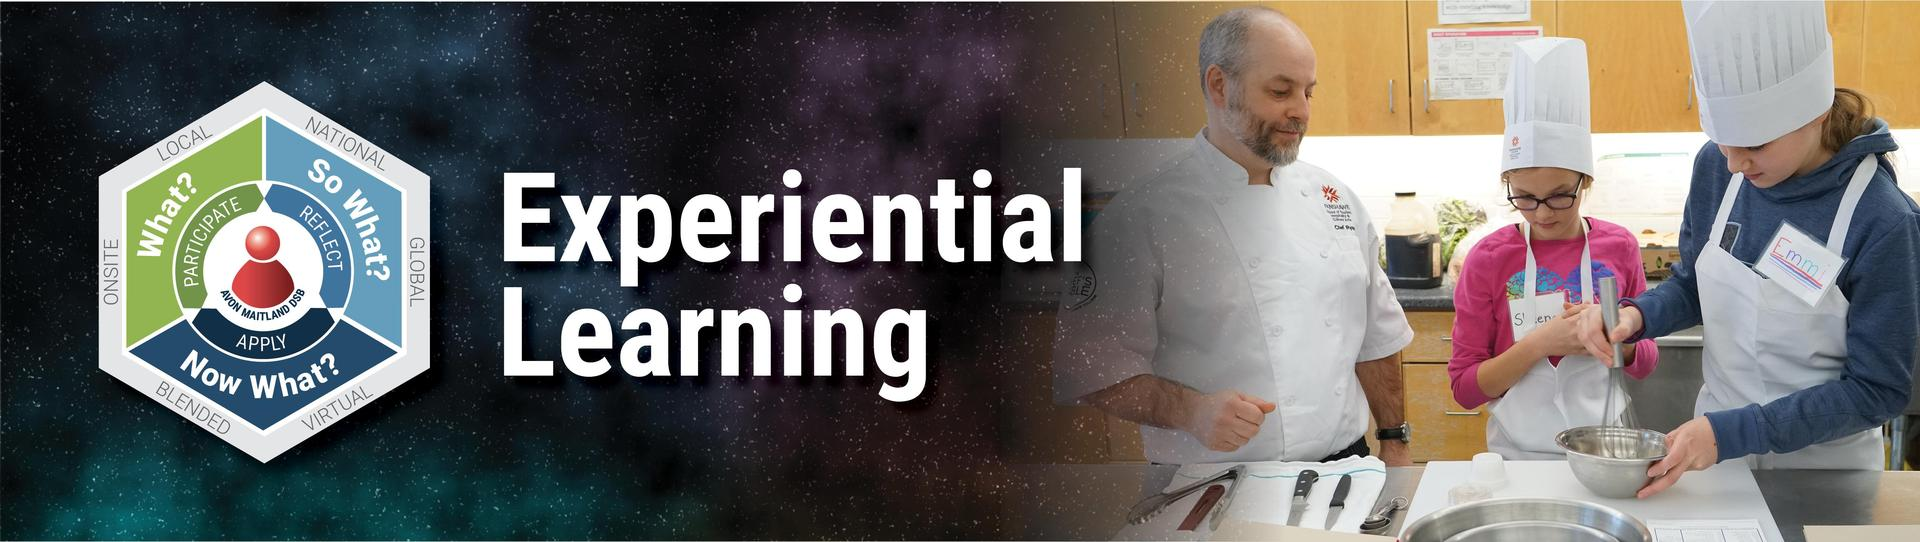 Experiential Learning banner image. Image of chef teaching two young students in the kitchen.